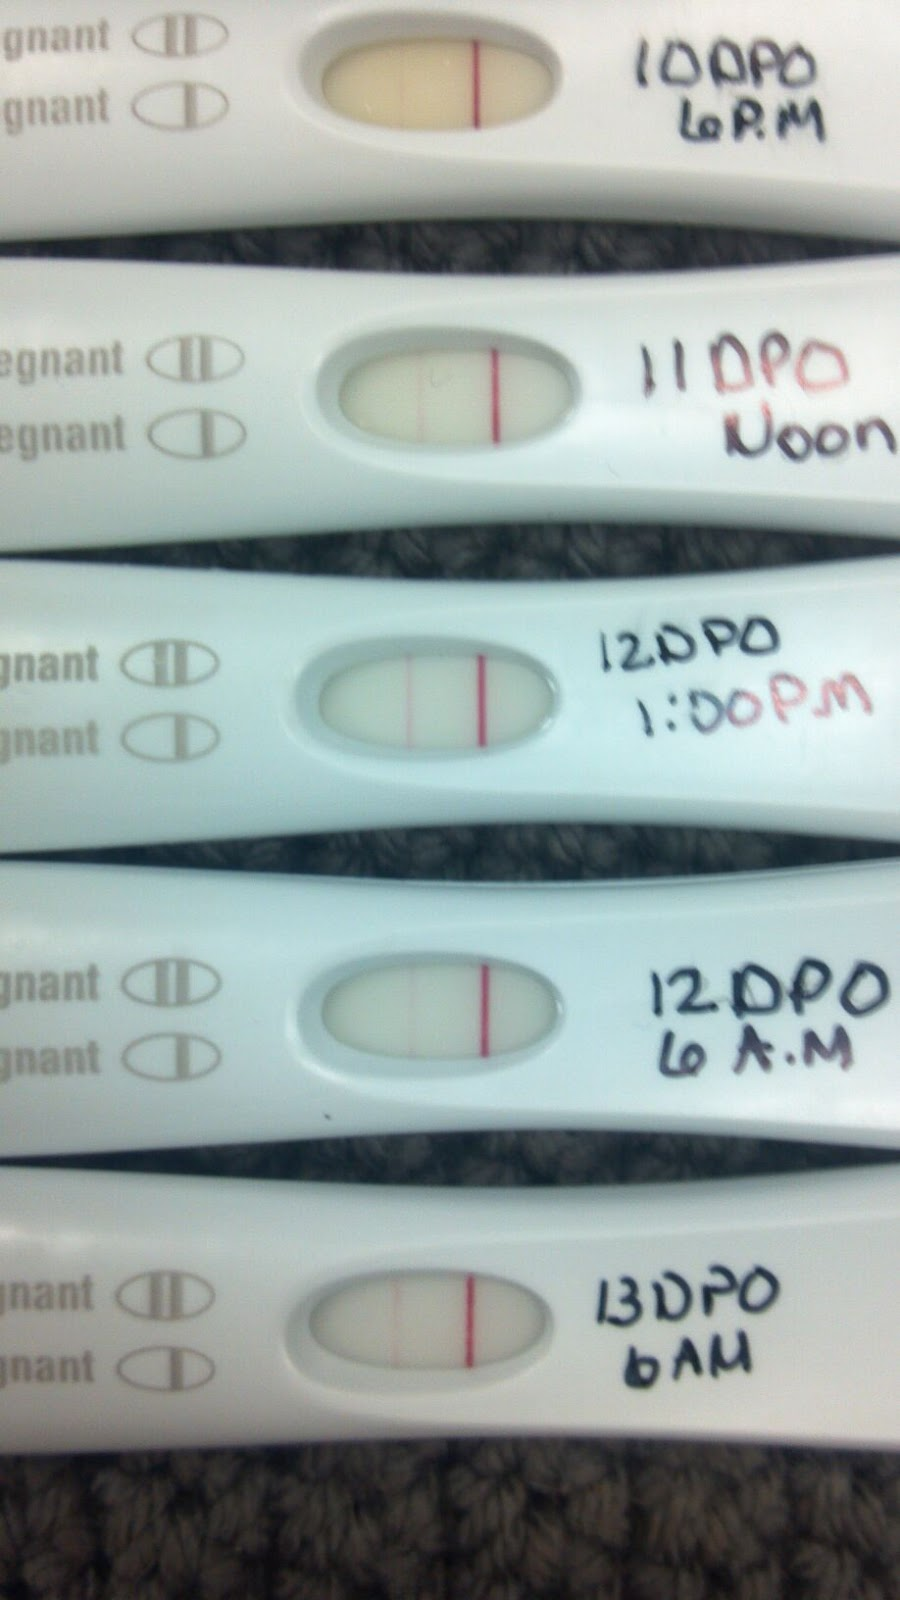 Life After Infertility: 13DPO and Waiting